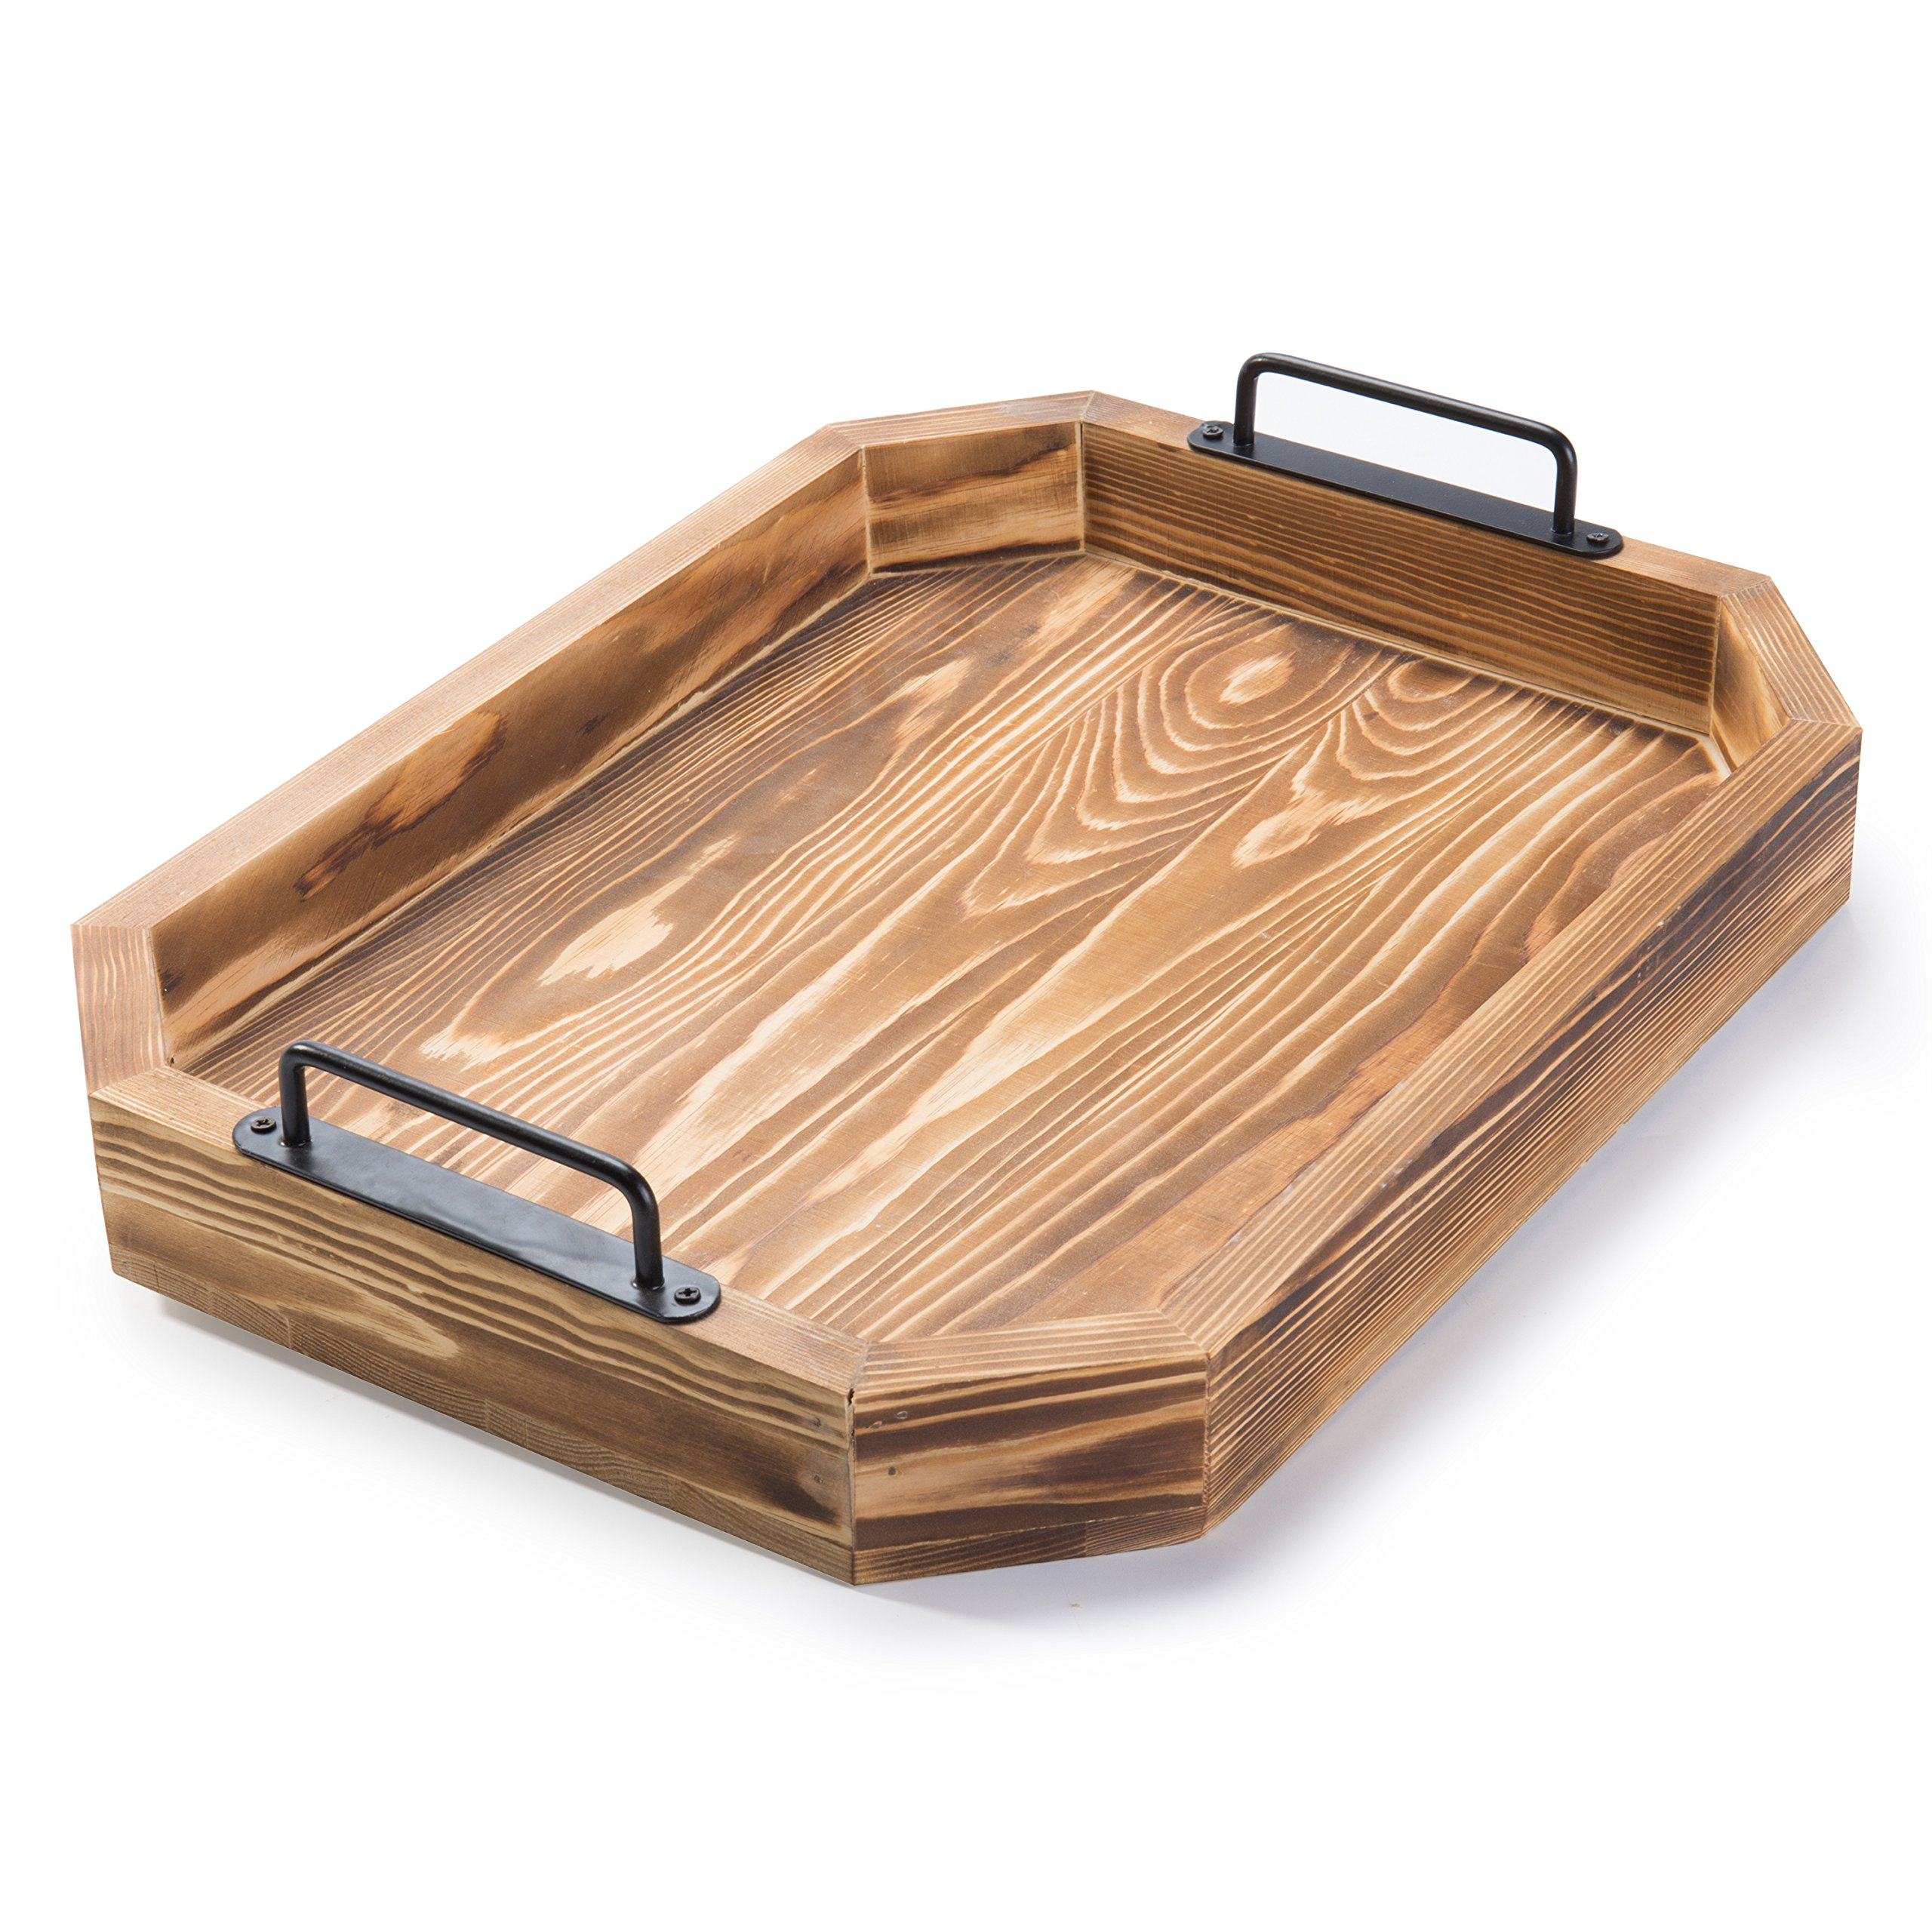 MyGift Rustic Burnt Wood 16-Inch Serving Tray with Metal Handles